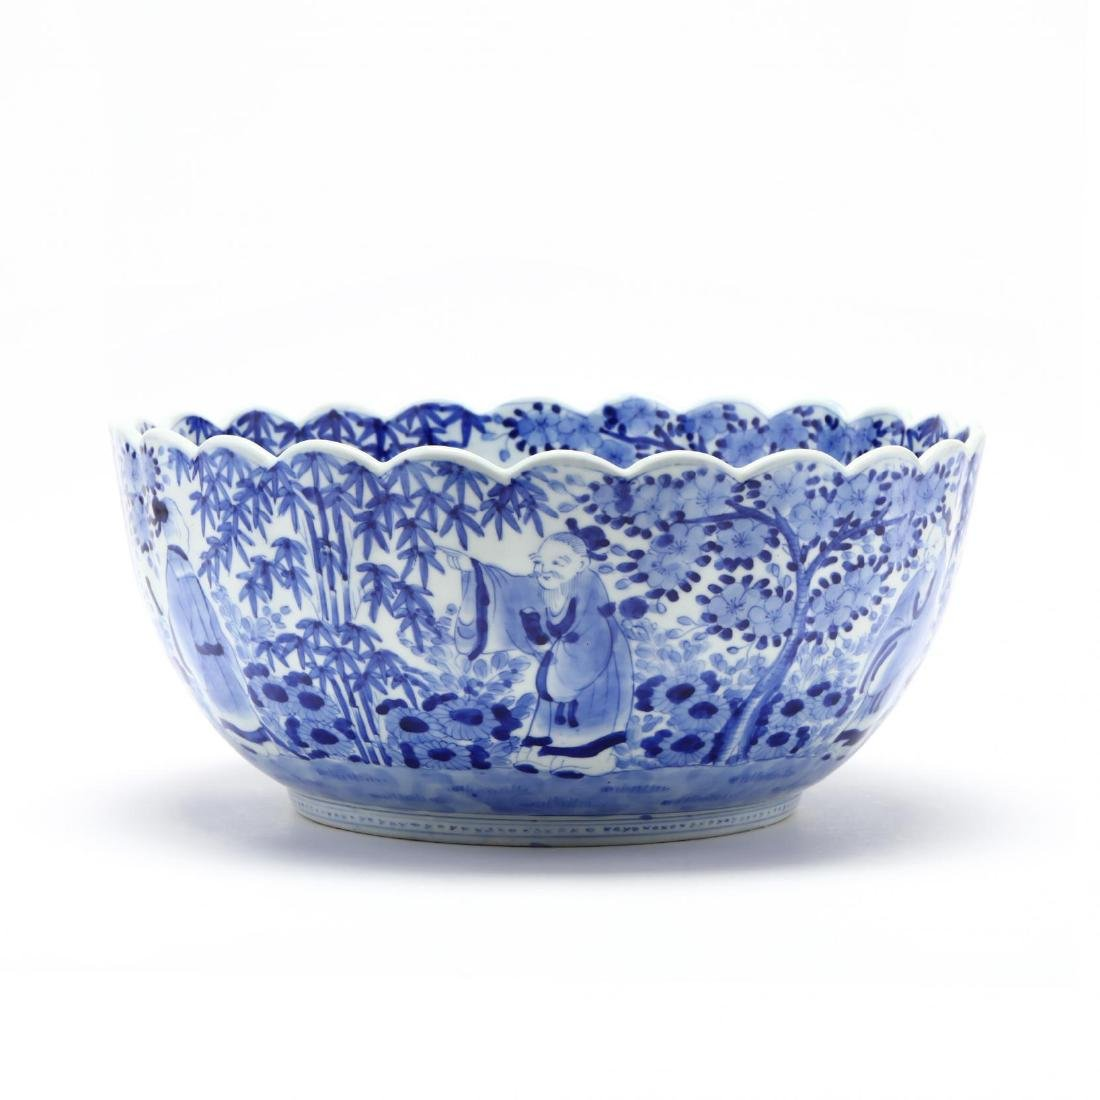 A Blue and White Punch Bowl with Scalloped Rim - 4